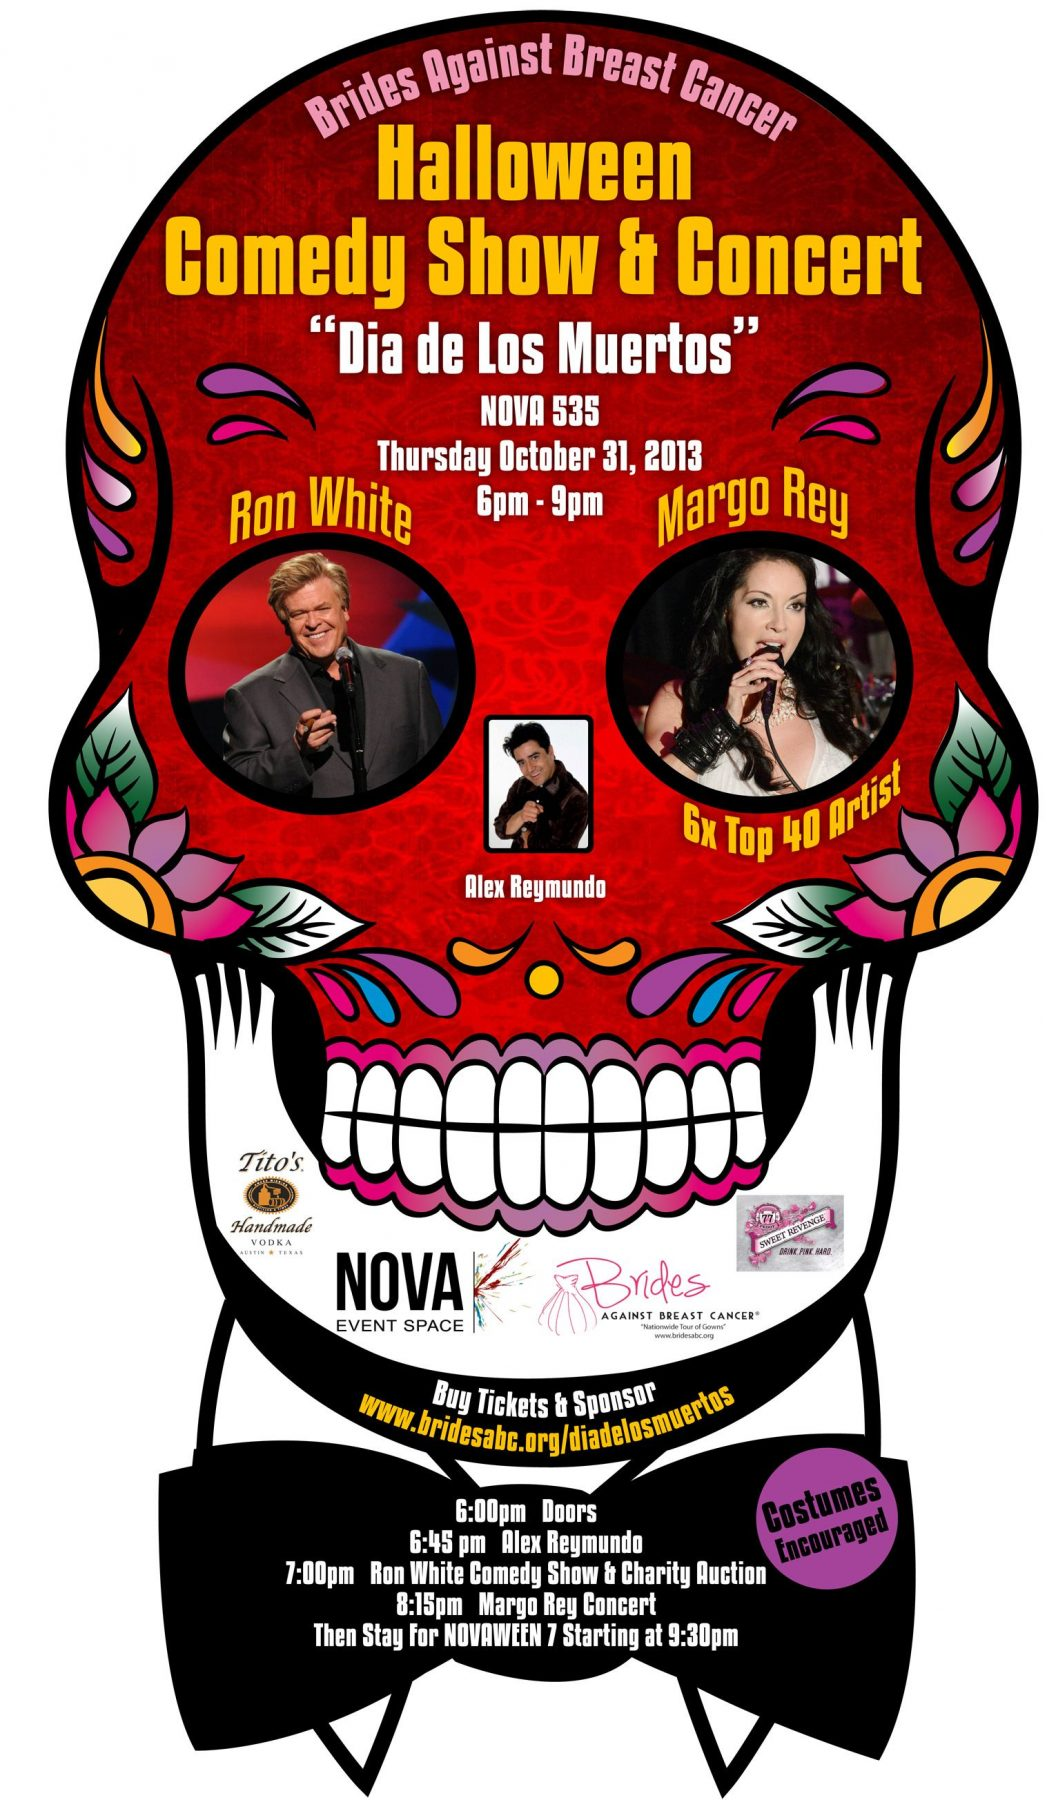 Support Brides Against Breast Cancer on Halloween Night RON WHITE Comedy Show and Live Auction at NOVA 535 in St. Pete